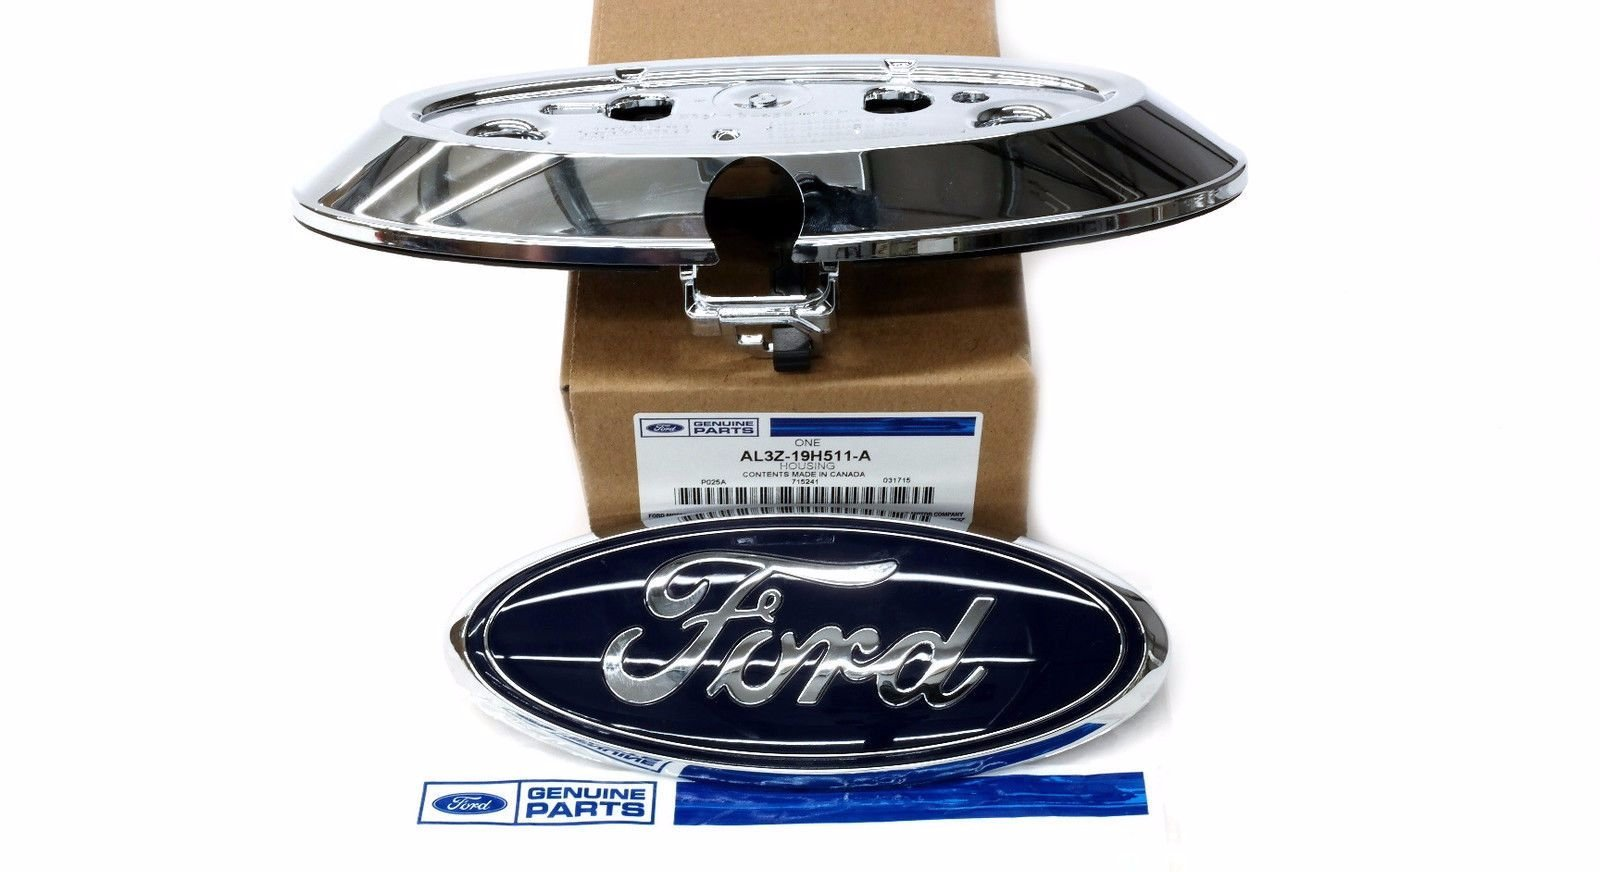 Ford Emblem Factory Fit Camera & Name Plate - Backup Camera